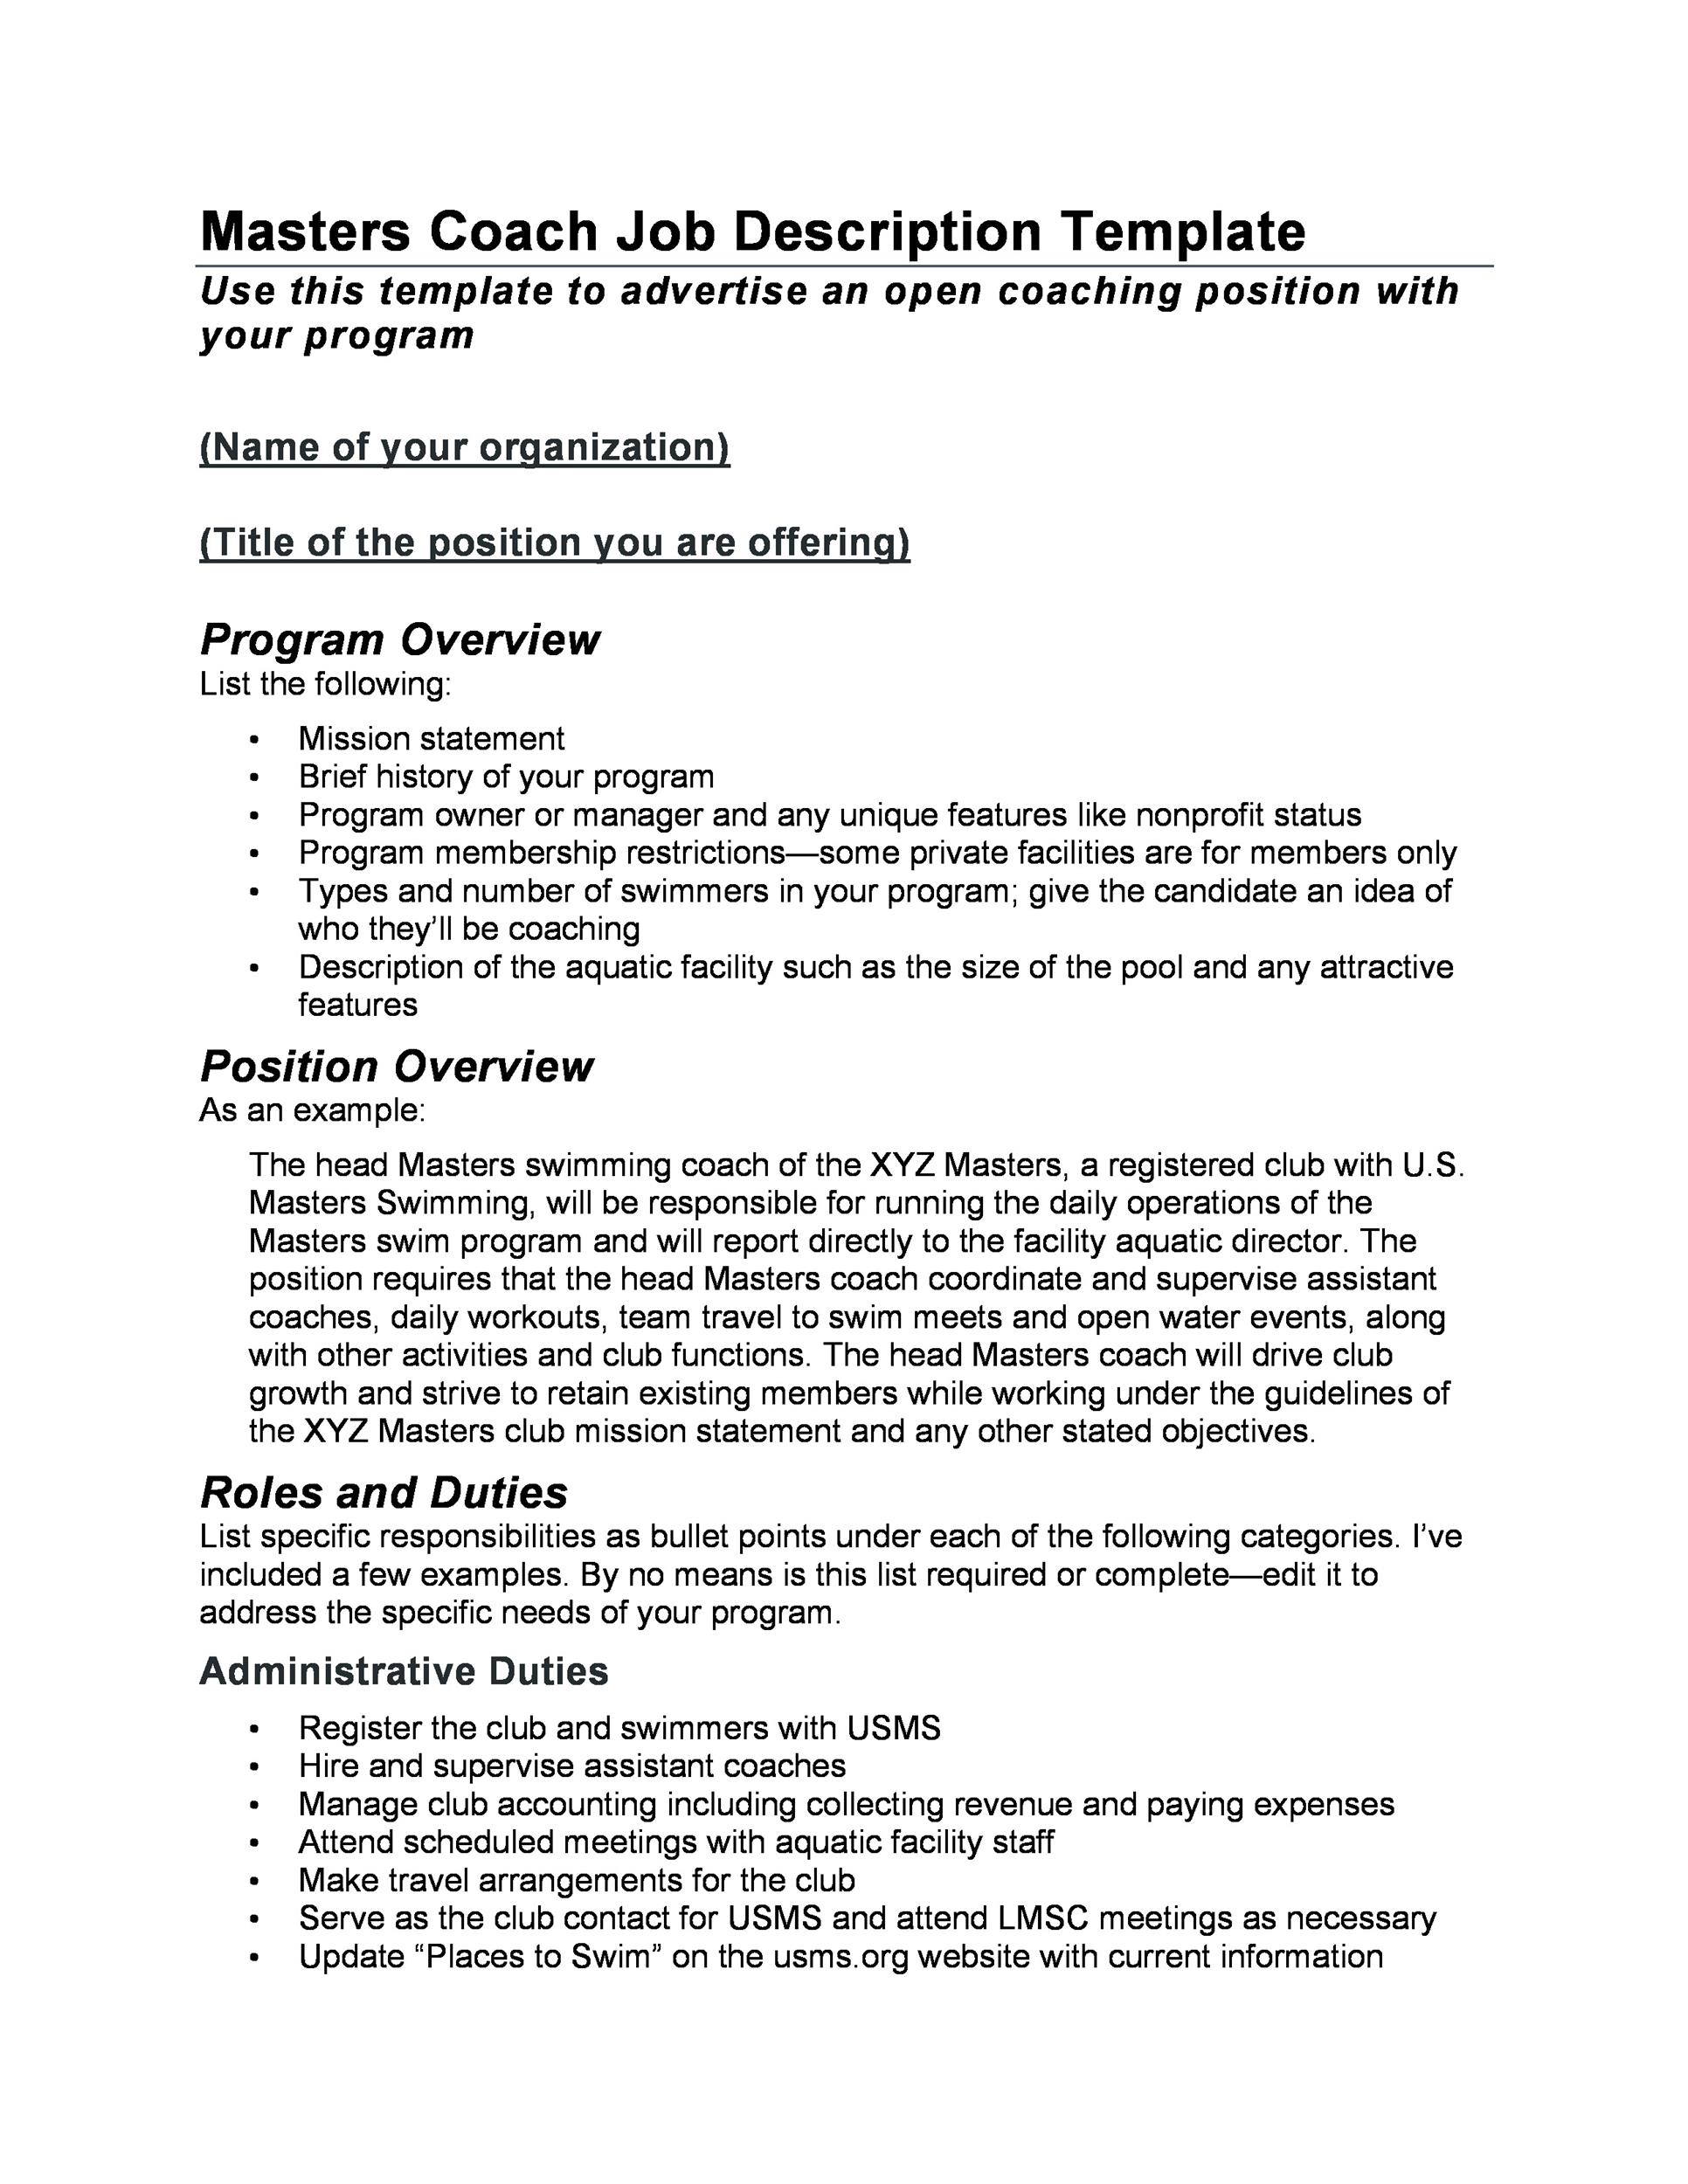 job description template 08 - Practice Director Job Description